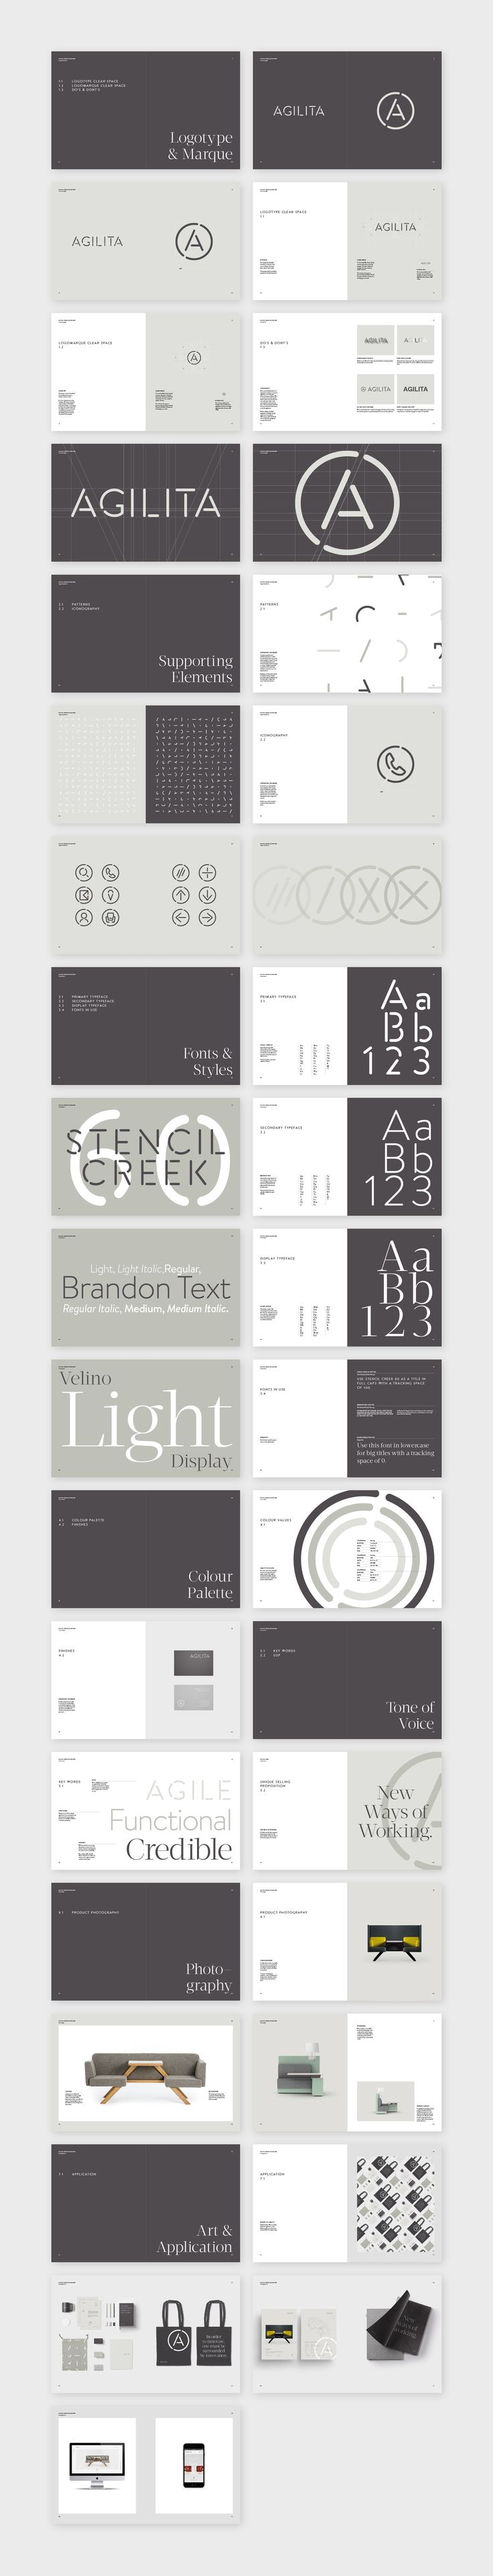 50 best branding images by P S on Pinterest